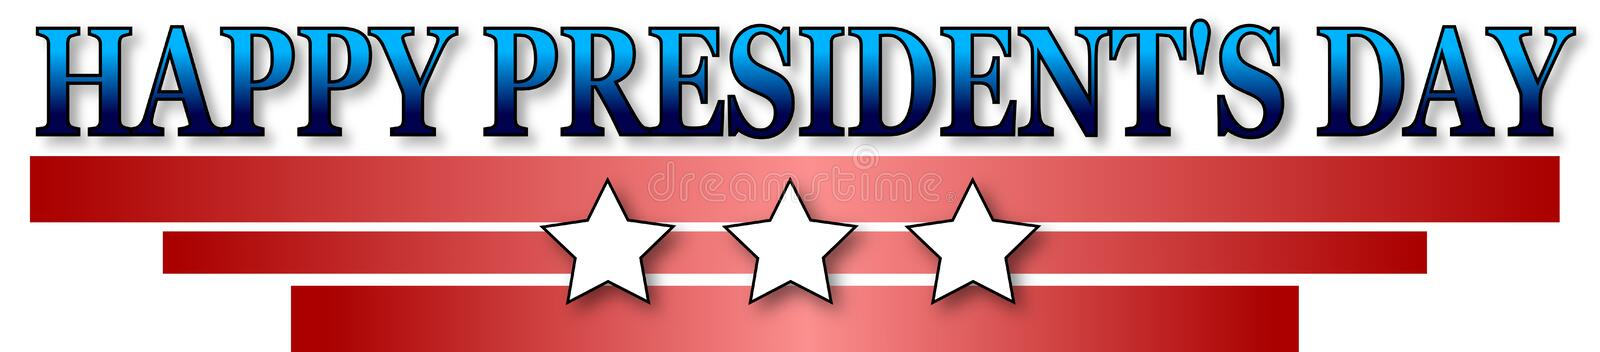 Happy Presidents day. On white background royalty free illustration